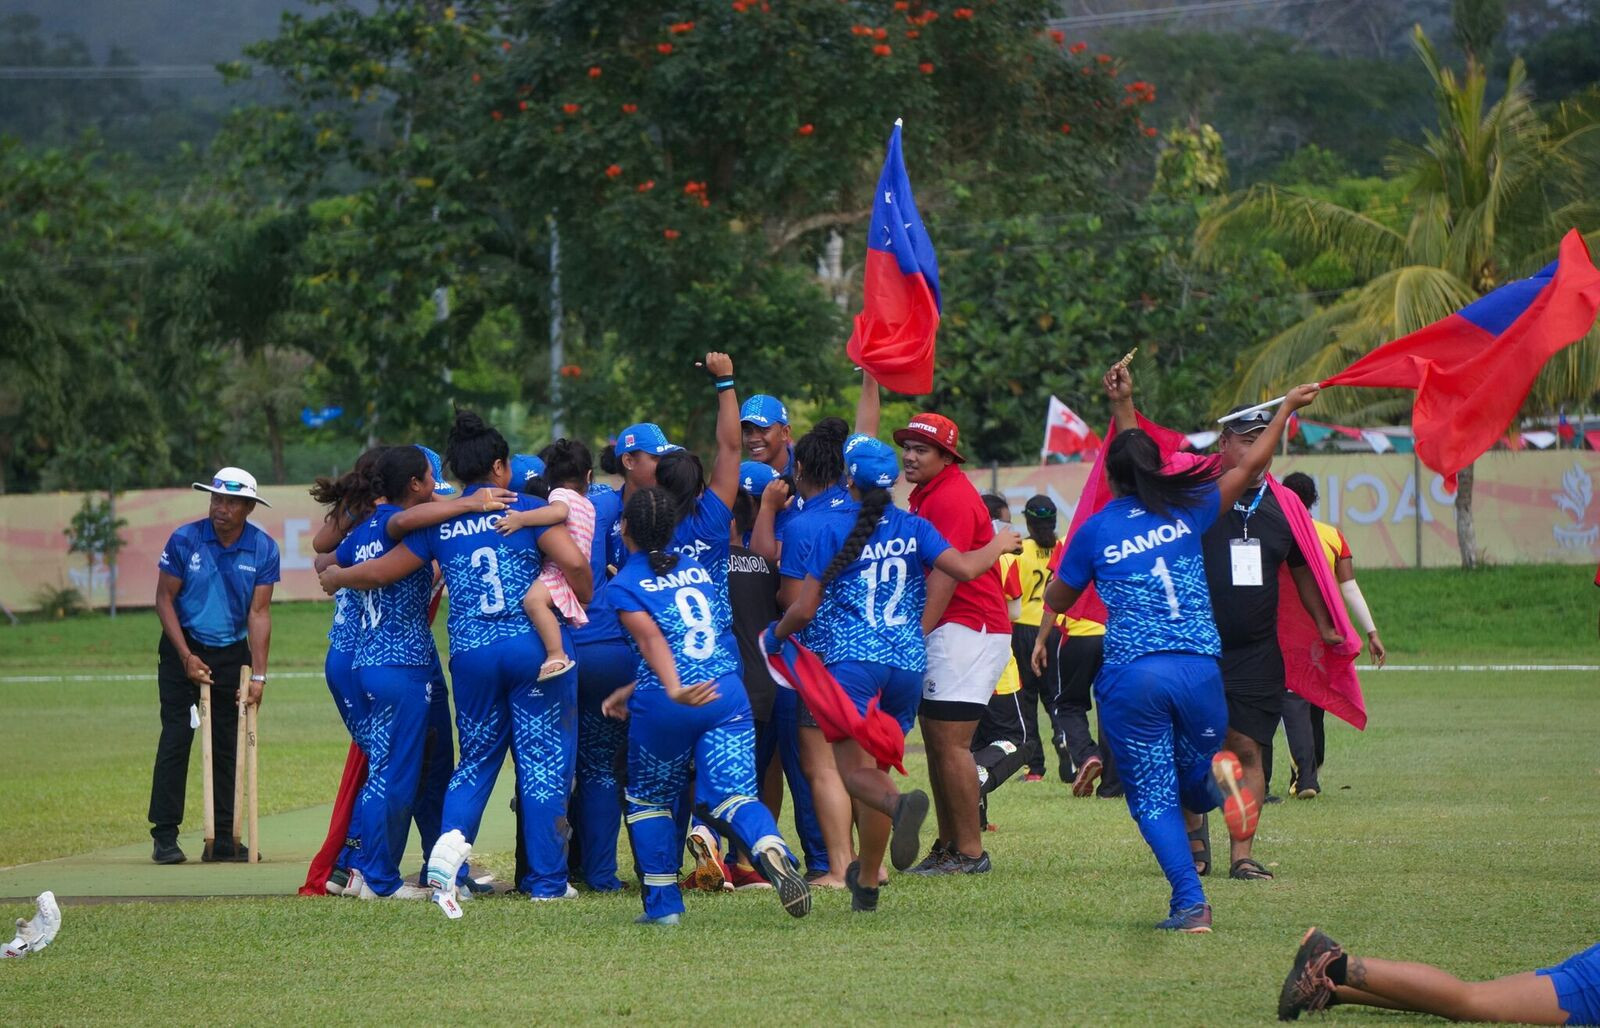 Samoa celebrating beating Papua New Guinea to win the women's cricket gold medal ©Samoa 2019